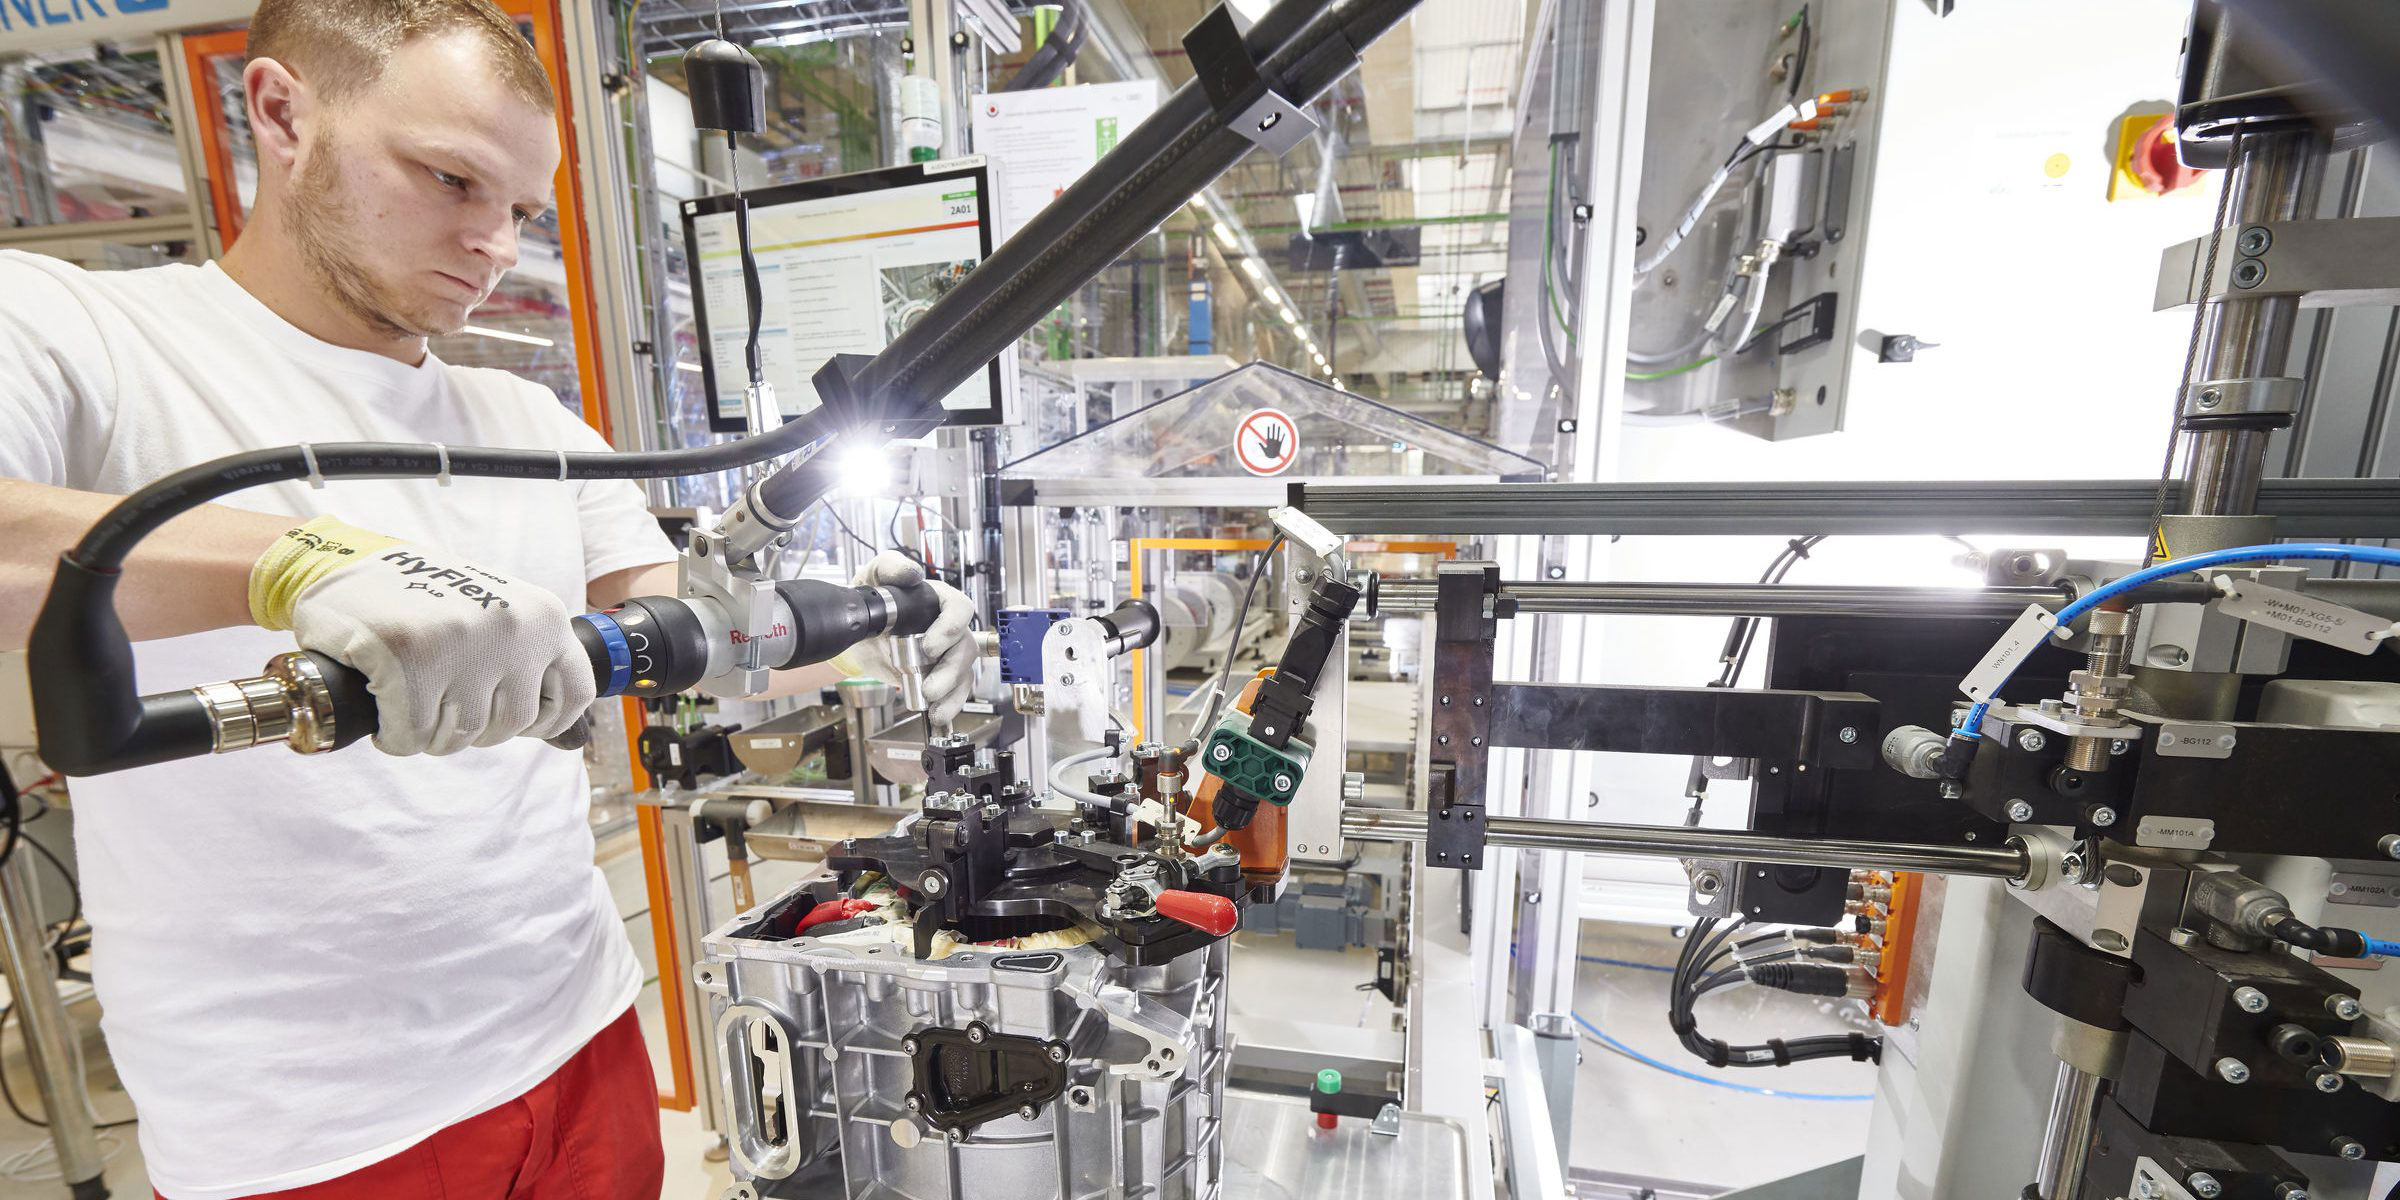 Production of Audi electric motors in Hungary